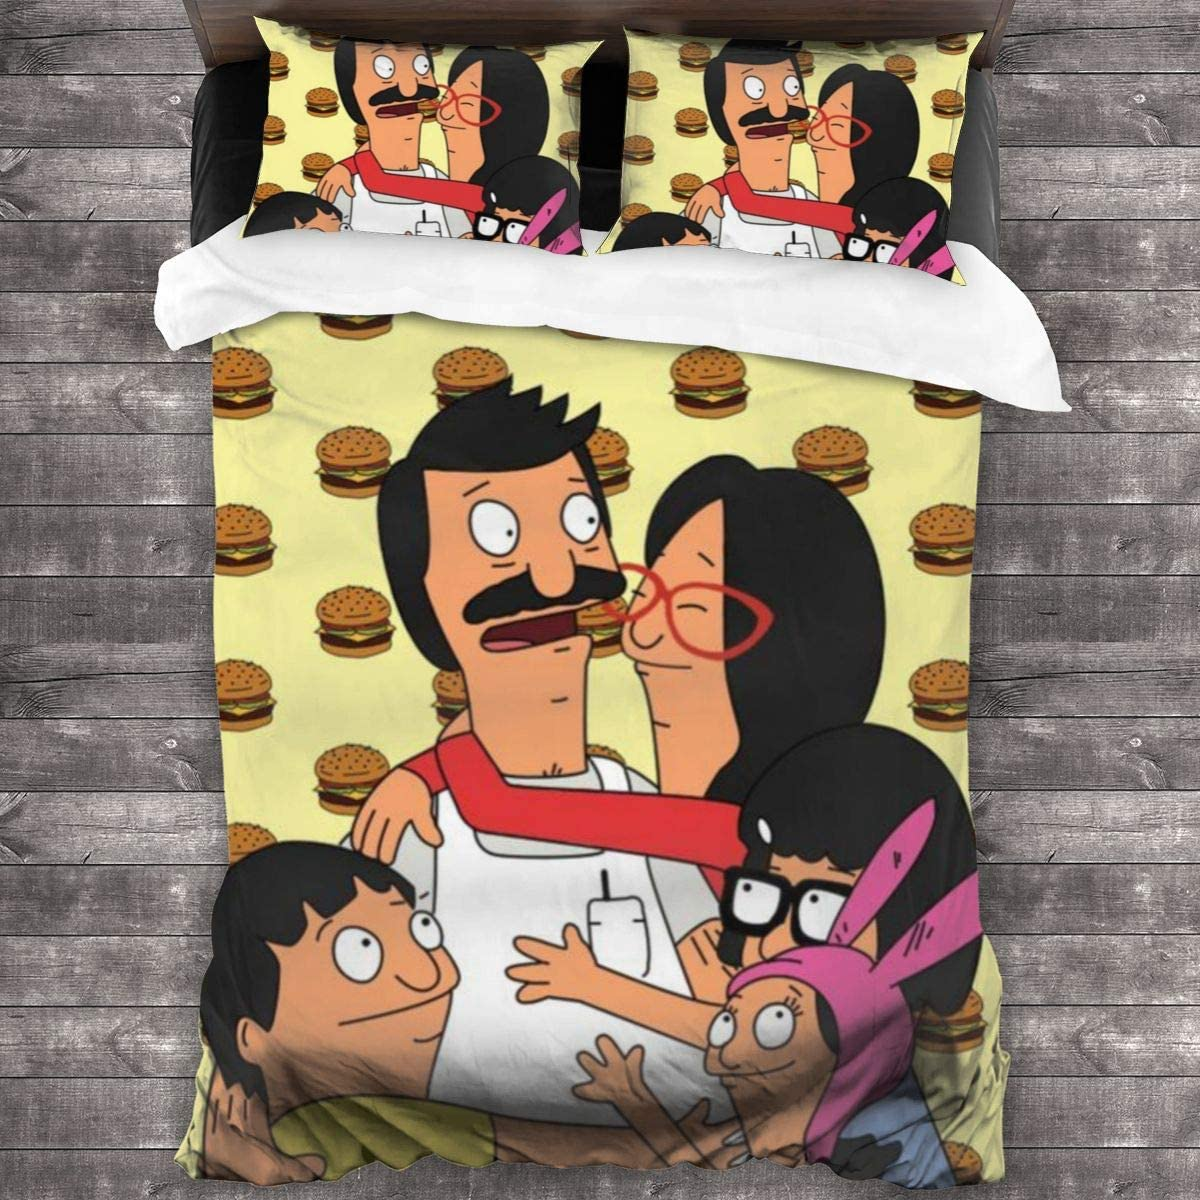 3 Pieces Bob's_Burgers Bedding Sets Bed Comforter Set 86x70 Inch with 2 Throw Pillow Case